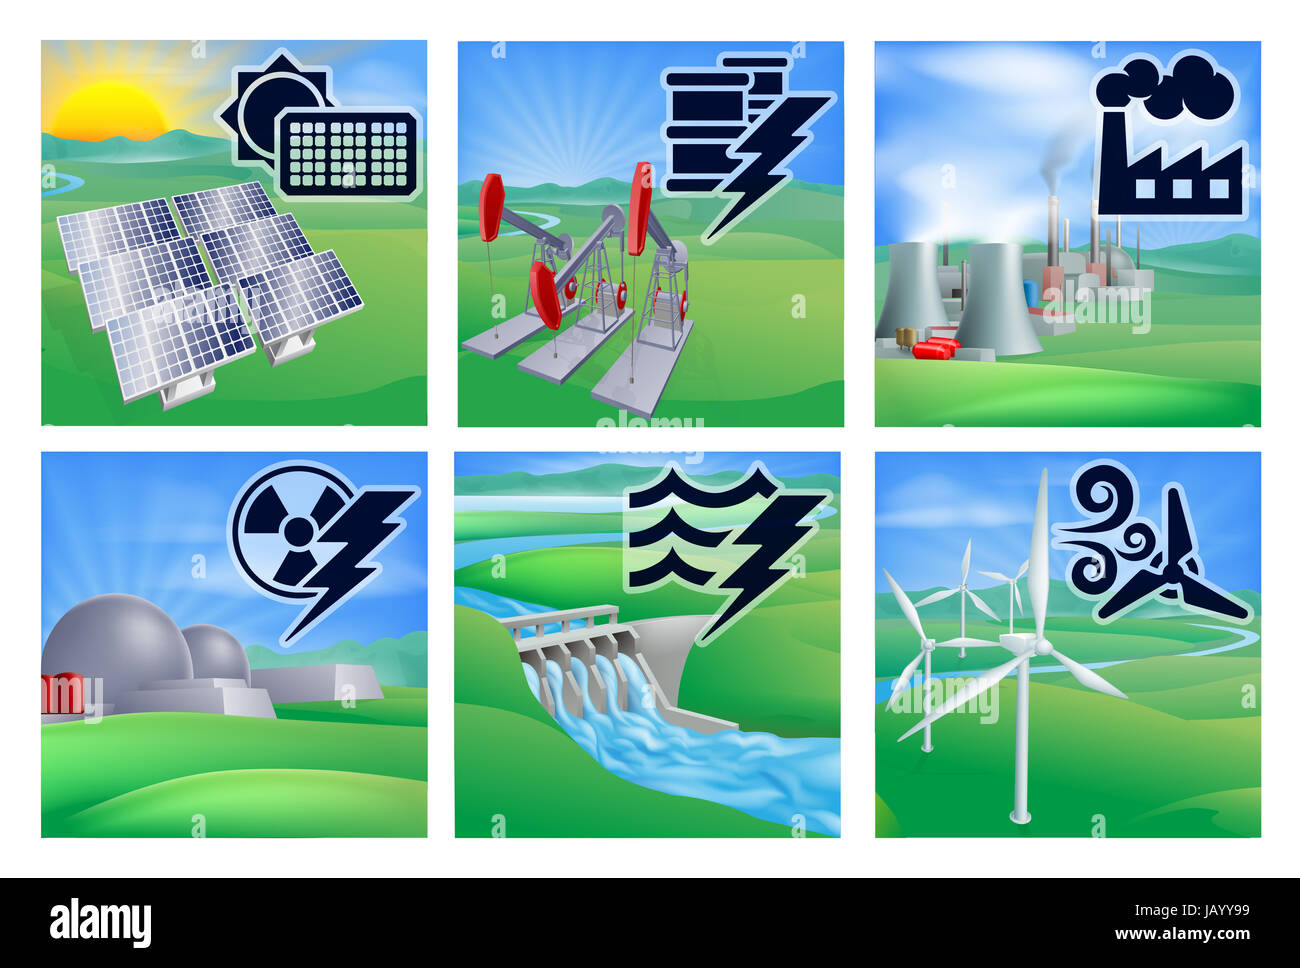 Different types of power or energy generation with icons. Photovoltaic cells solar renewable, oil well pumpjacks, Stock Photo